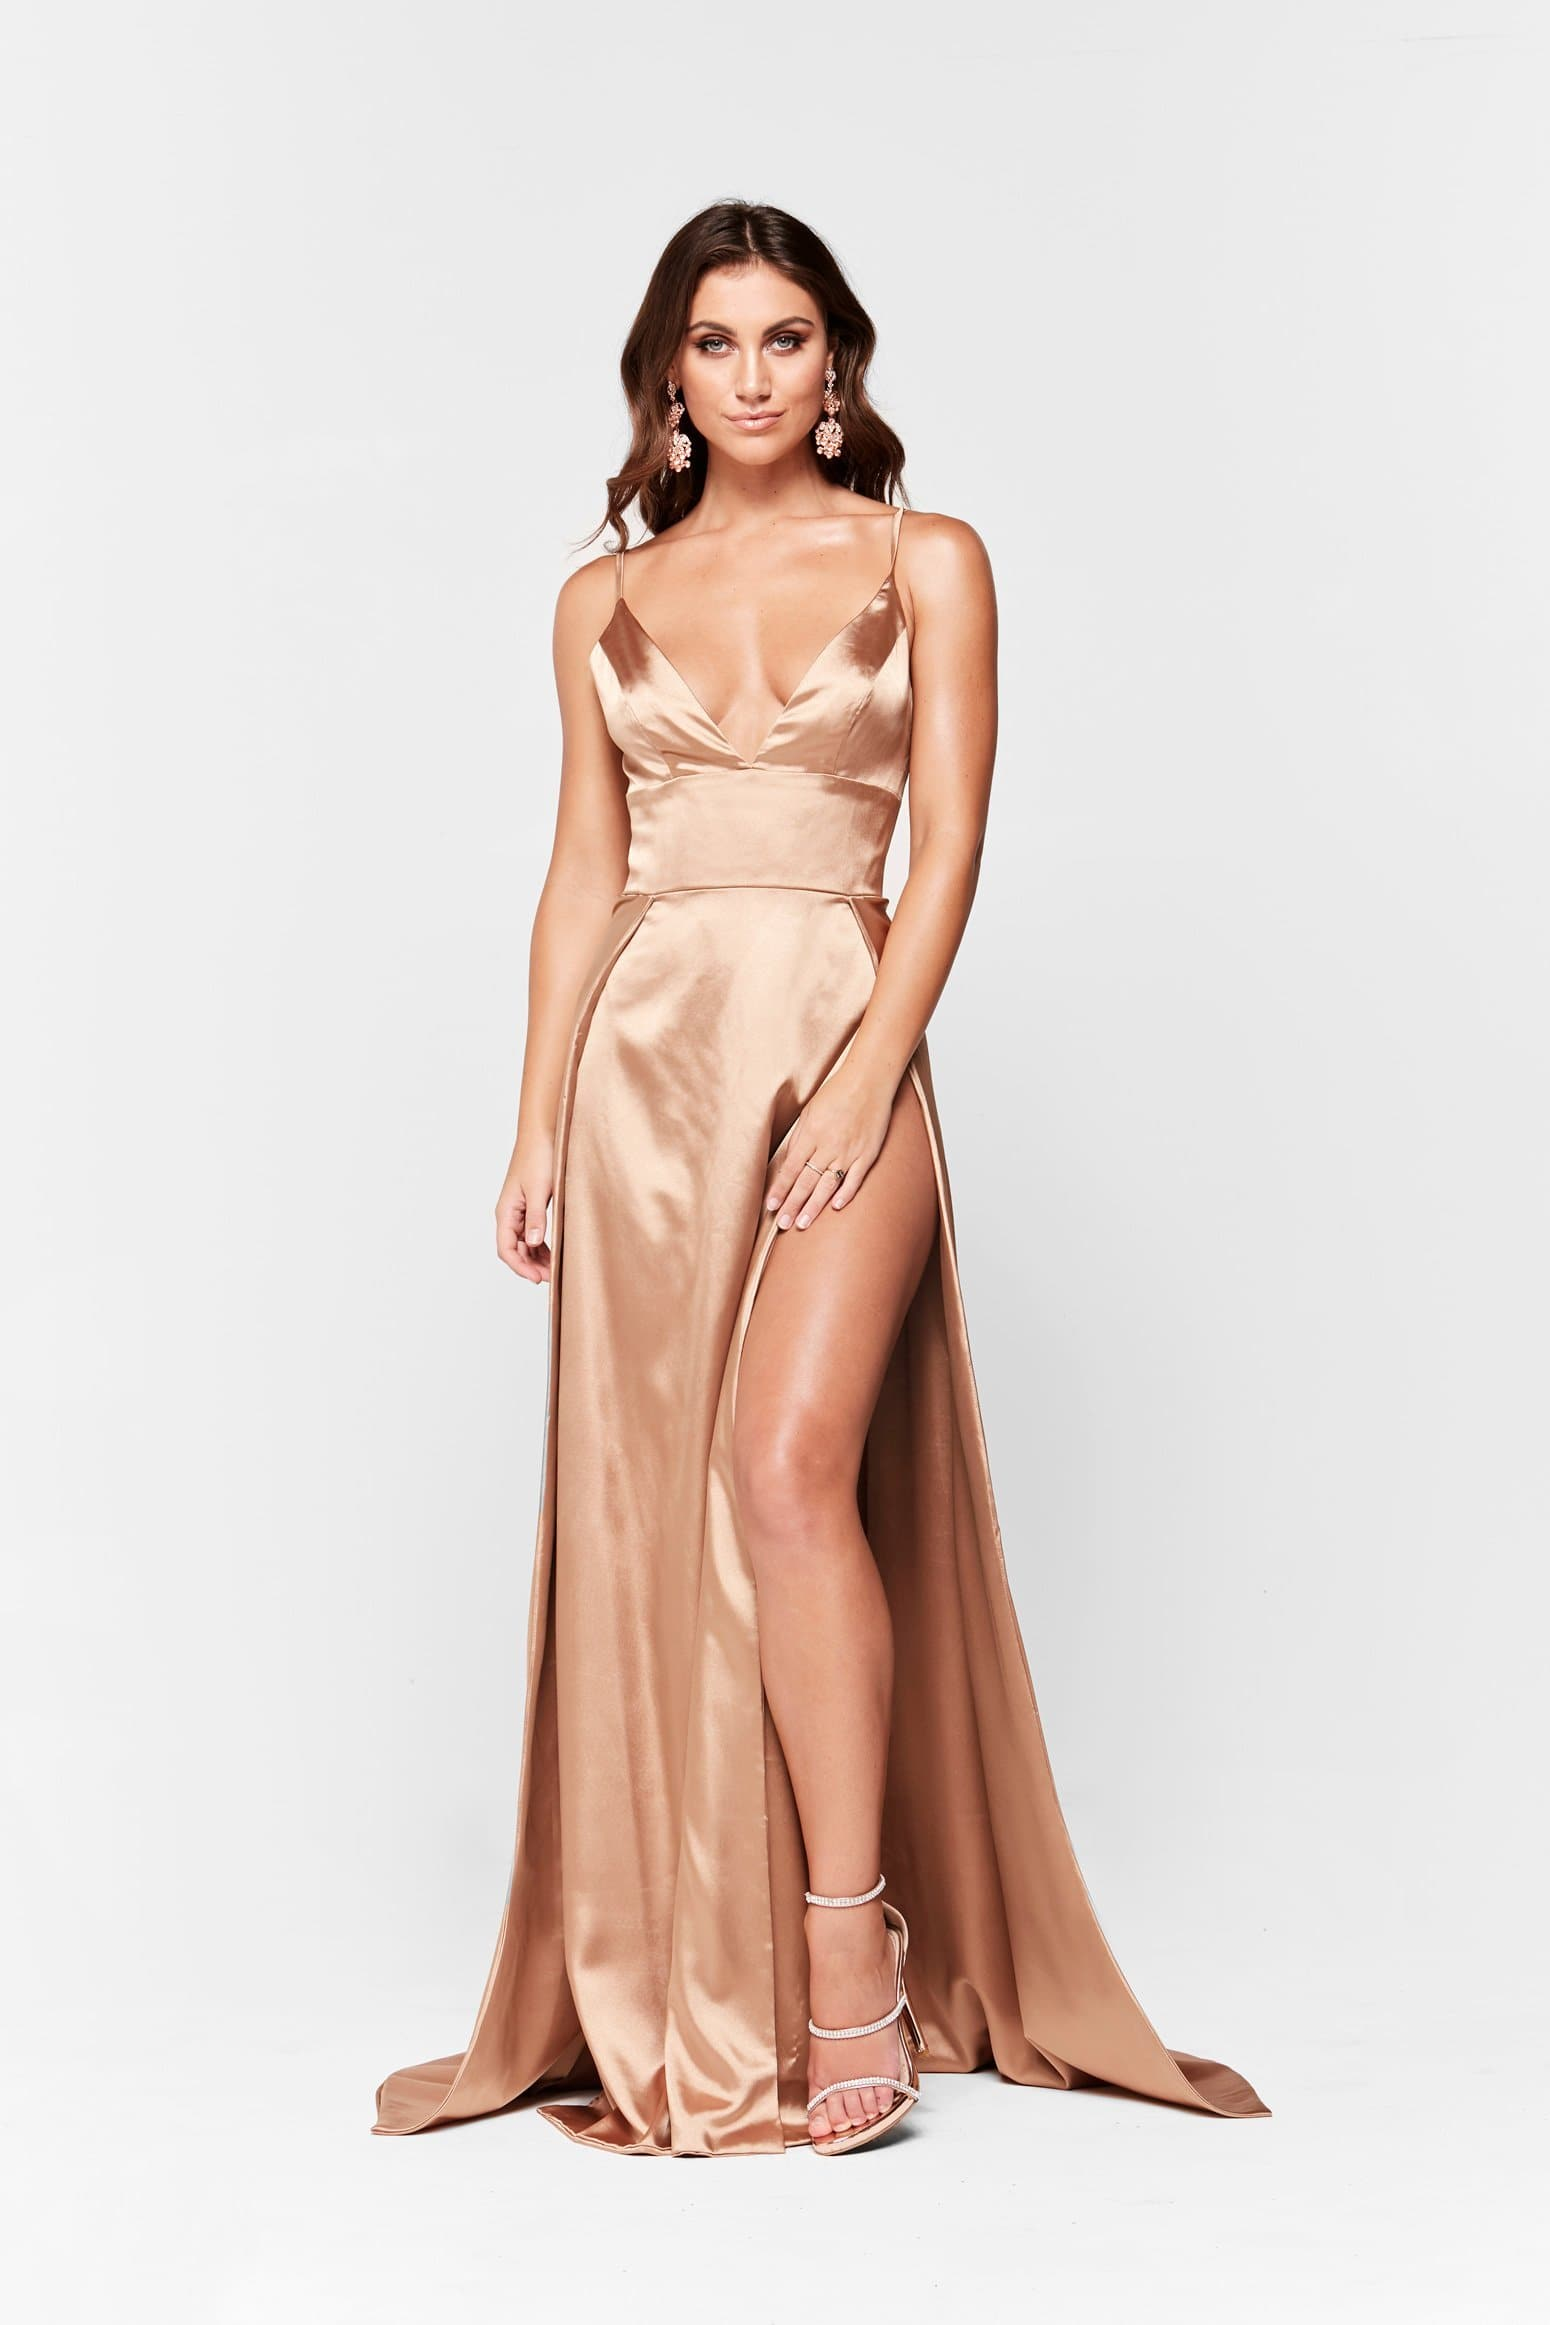 A&N Luxe Tiffany Satin Gown - Gold